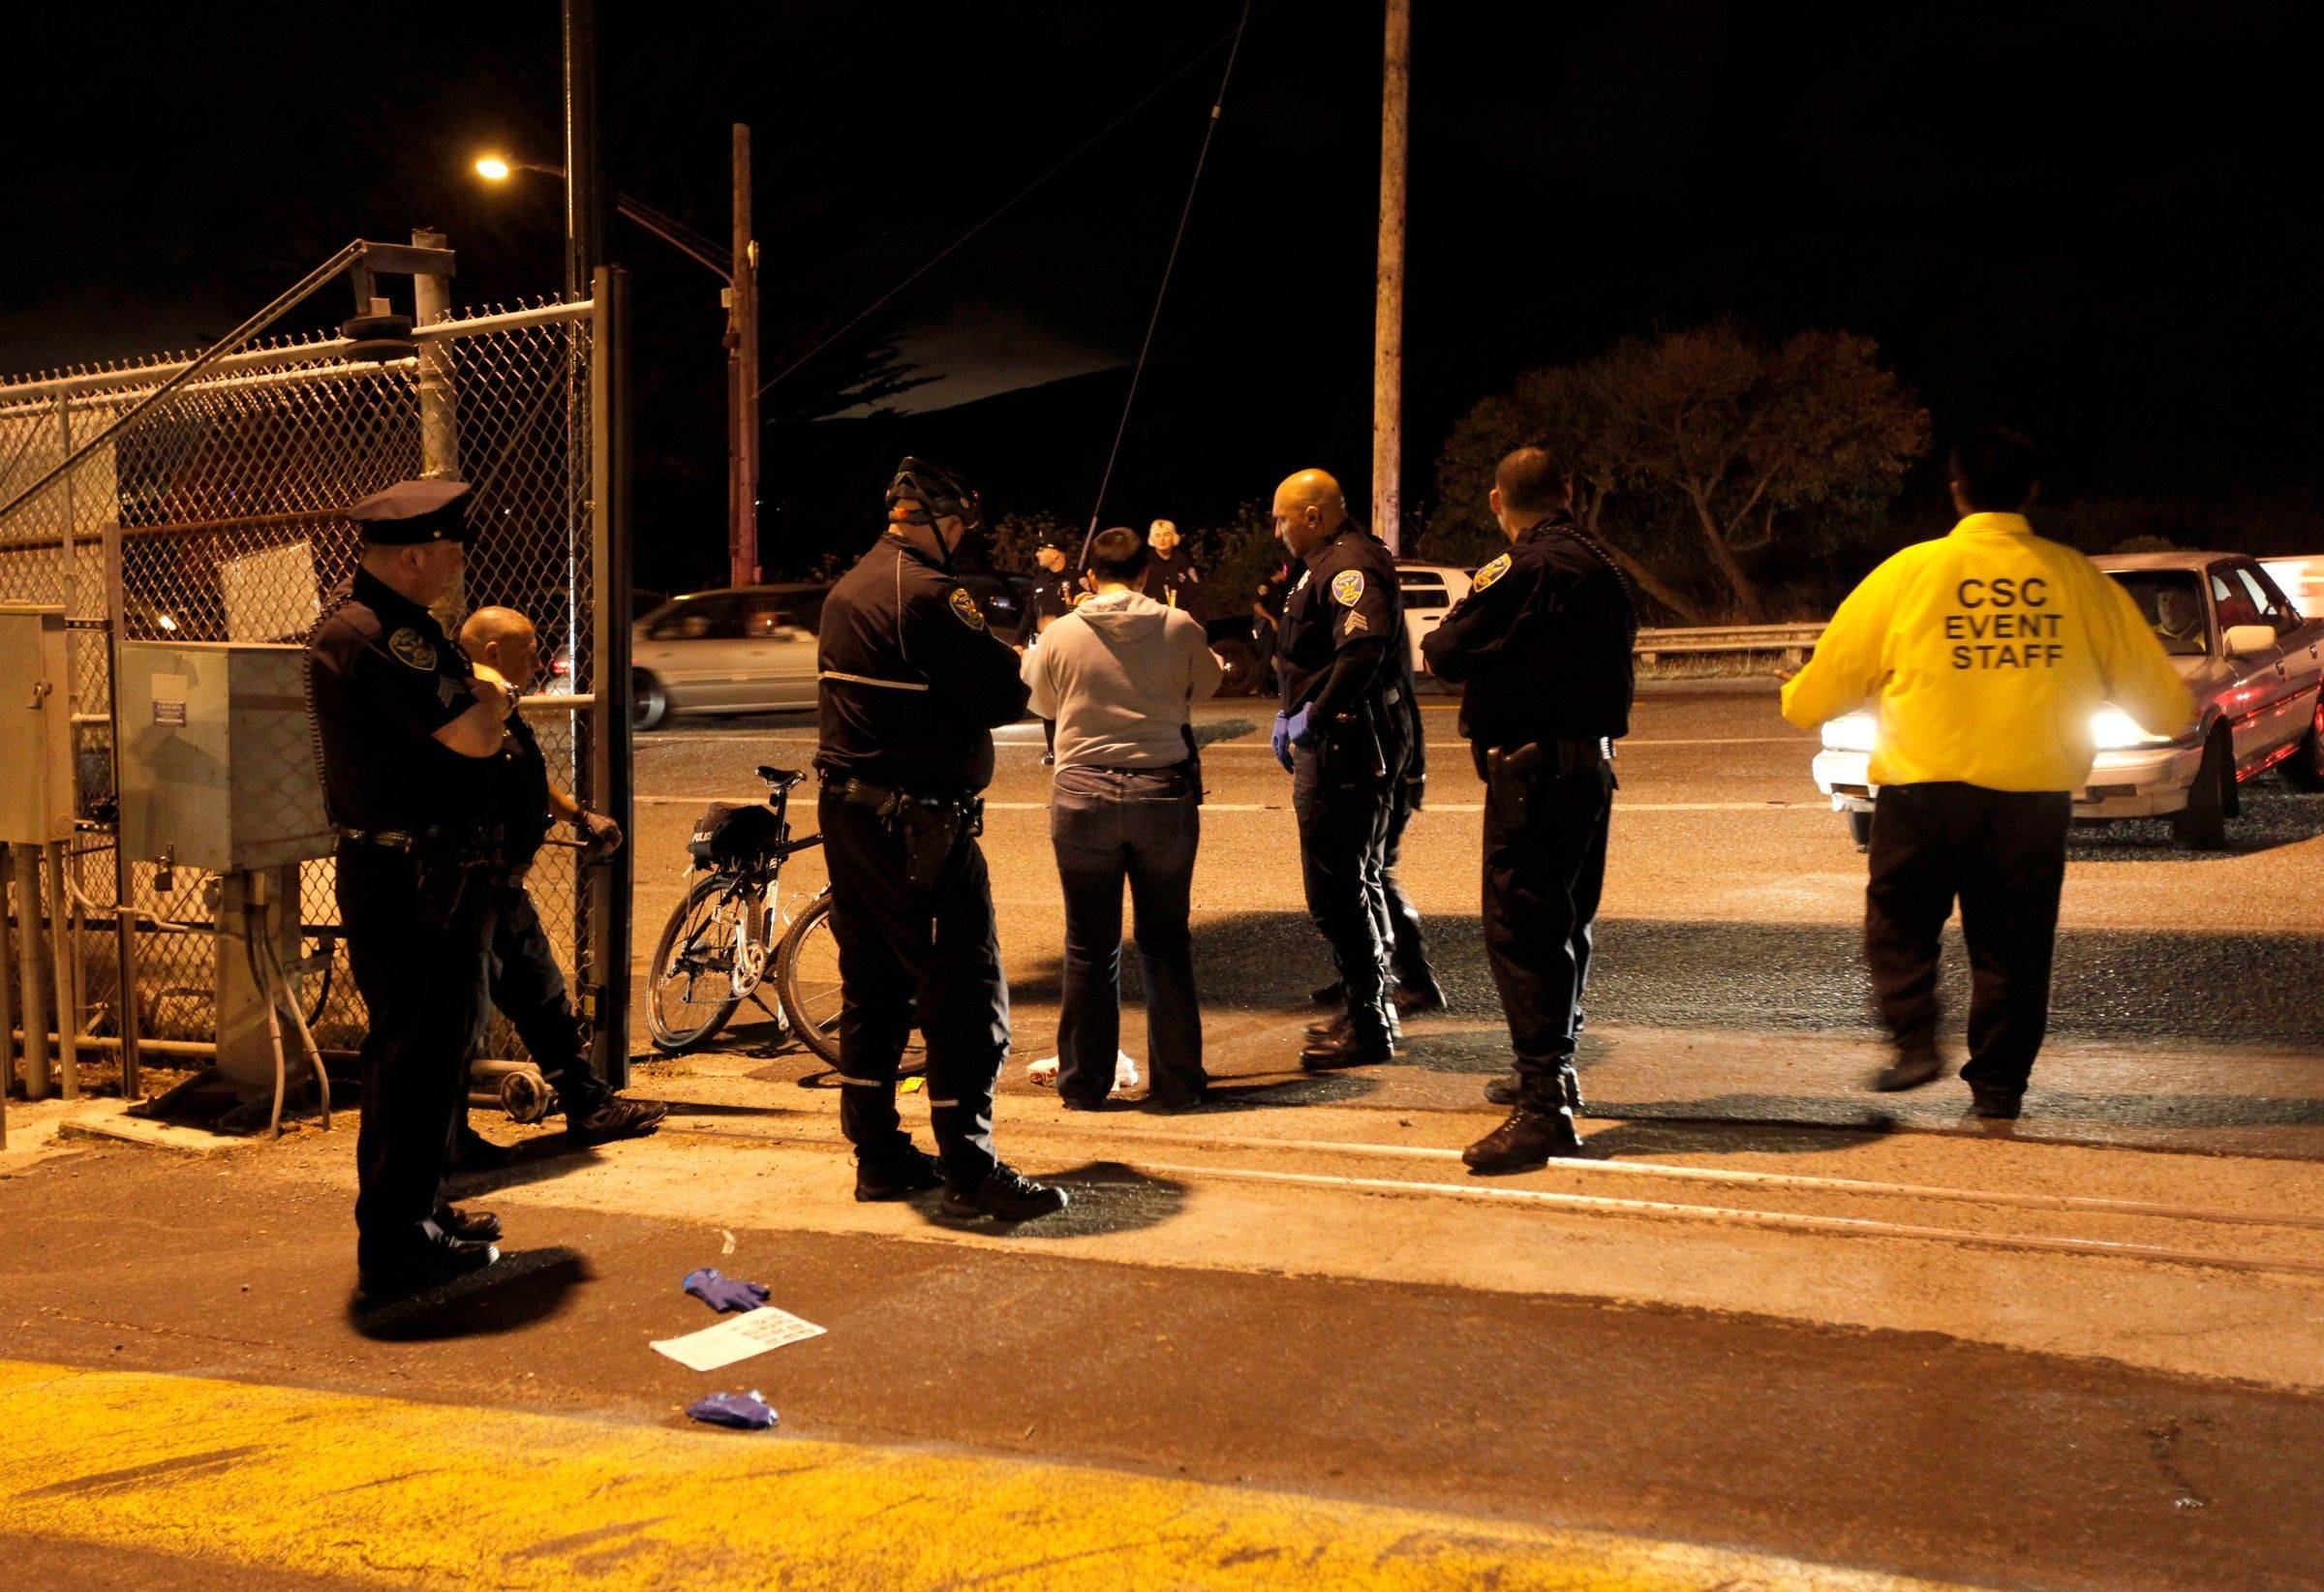 Police officers investigate the scene of a shooting just outside of lot L at Candlestick Park, where the San Francisco 49ers had just finished playing the Oakland Raiders in San Francisco, Calif. on Saturday Aug. 20, 2011.